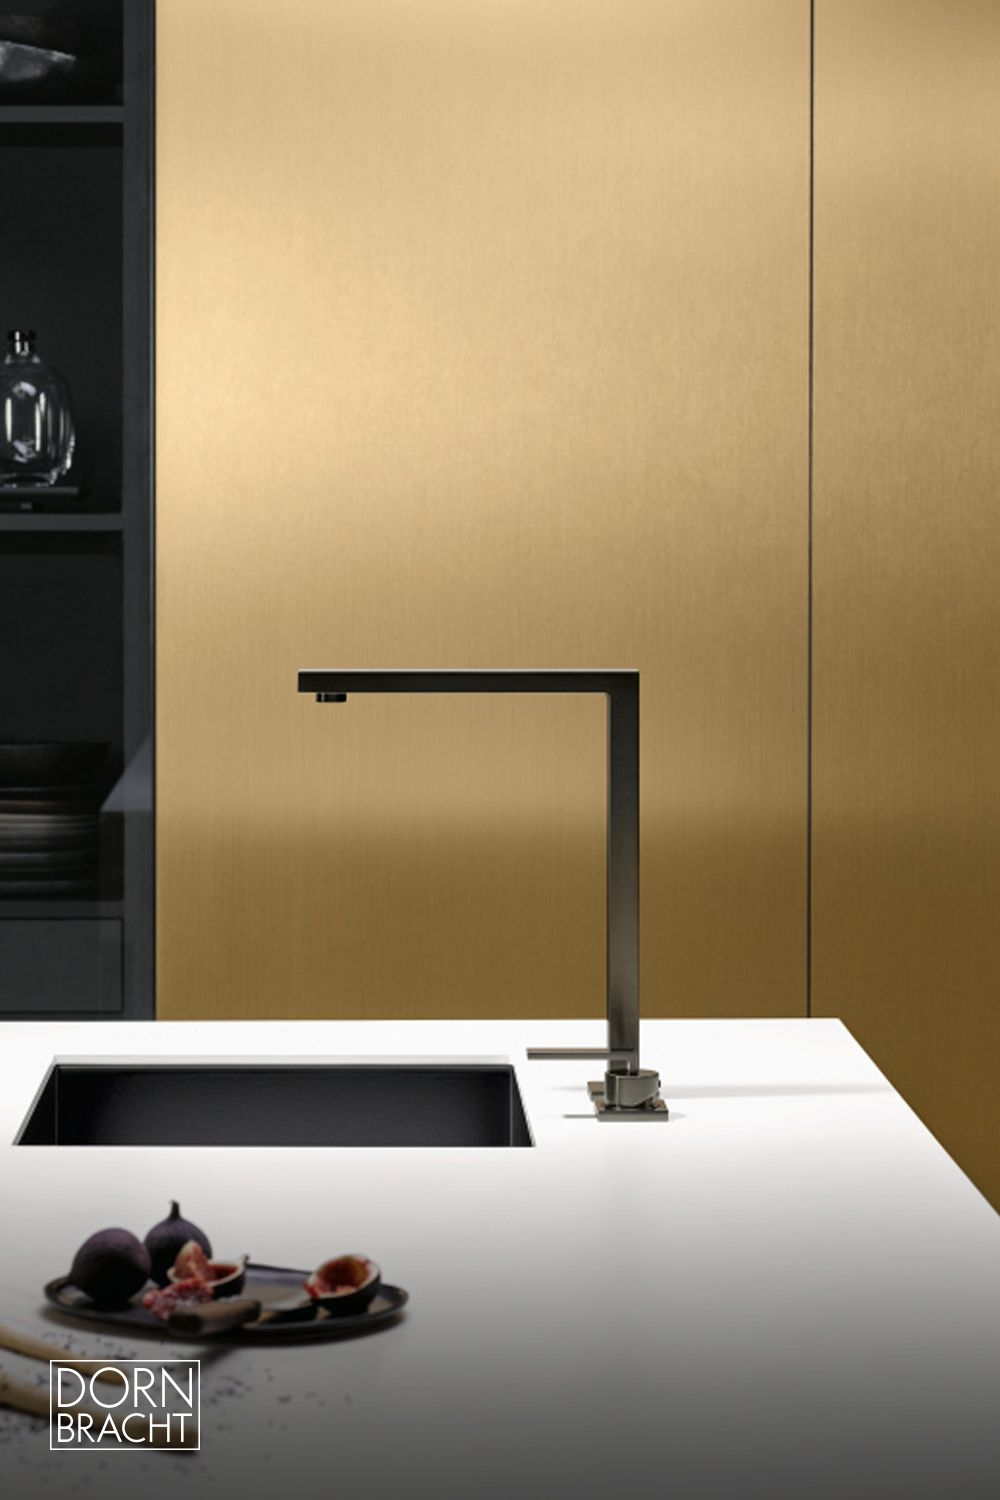 Stainless Steel Kitchen Faucet In 2020 Modern Kitchen Taps Modern Kitchen Faucet Modern Kitchen Faucets Stainless Steel